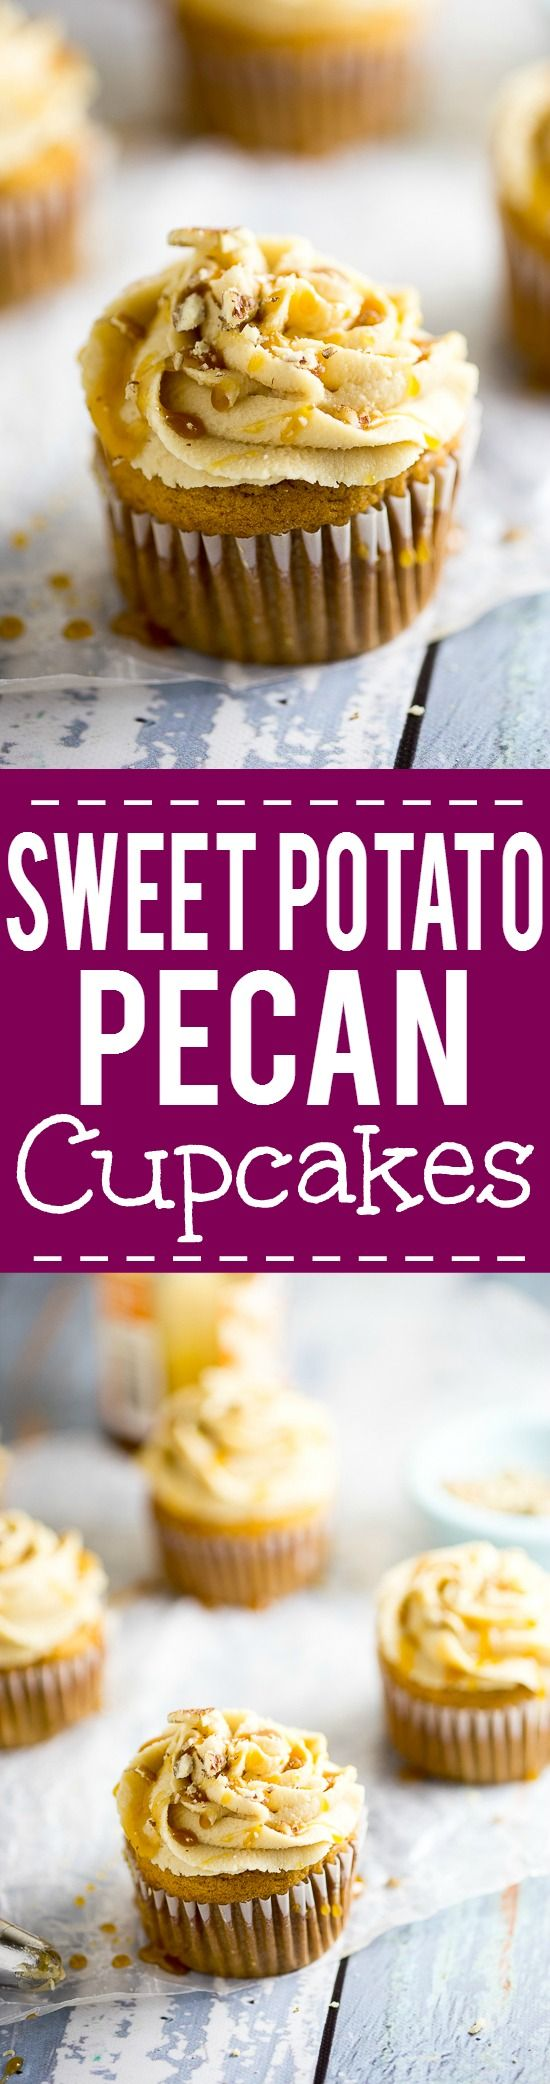 Sweet Potato Pecan Cupcakes Recipe with Caramel Frosting -Rich and moist Sweet Potato Pecan Cupcakes are topped with a sweet caramel frosting. These festive cupcakes have all your favorite Fall flavors and would be a delicious non-pie addition to your Thanksgiving dessert table.